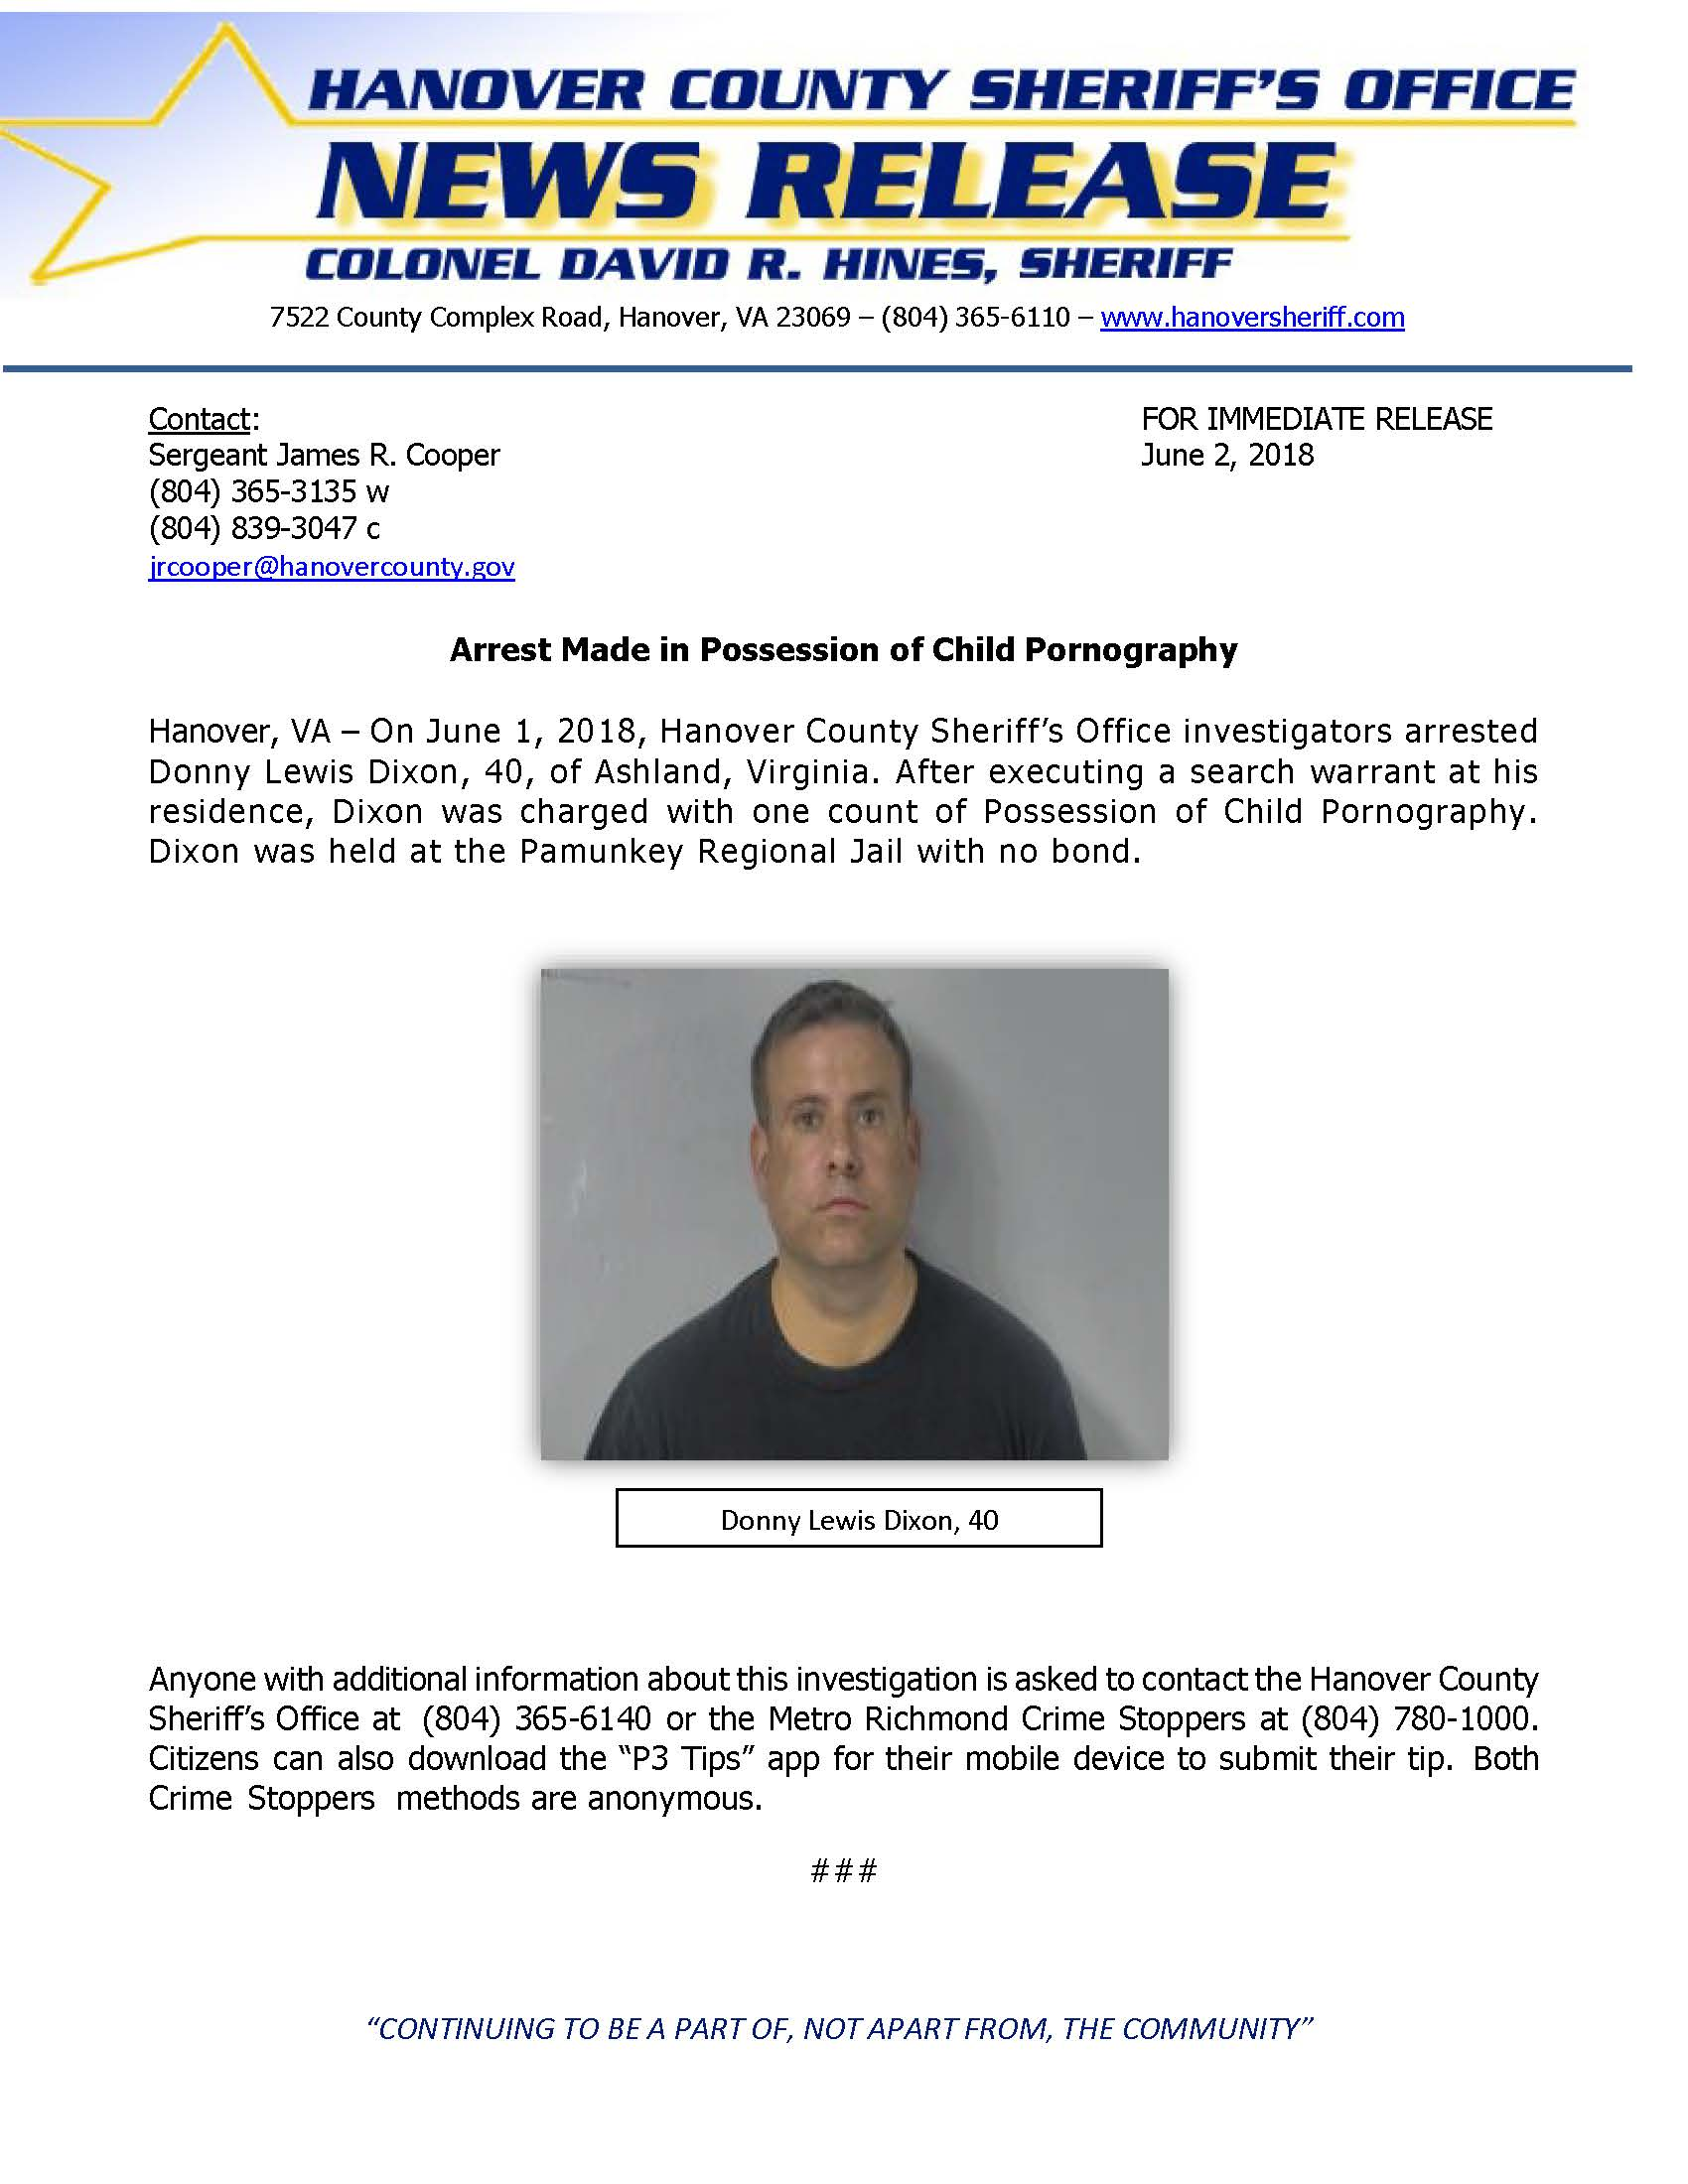 HCSO - Arrest Made in Possession of Child Pornography Case- June 2018-1